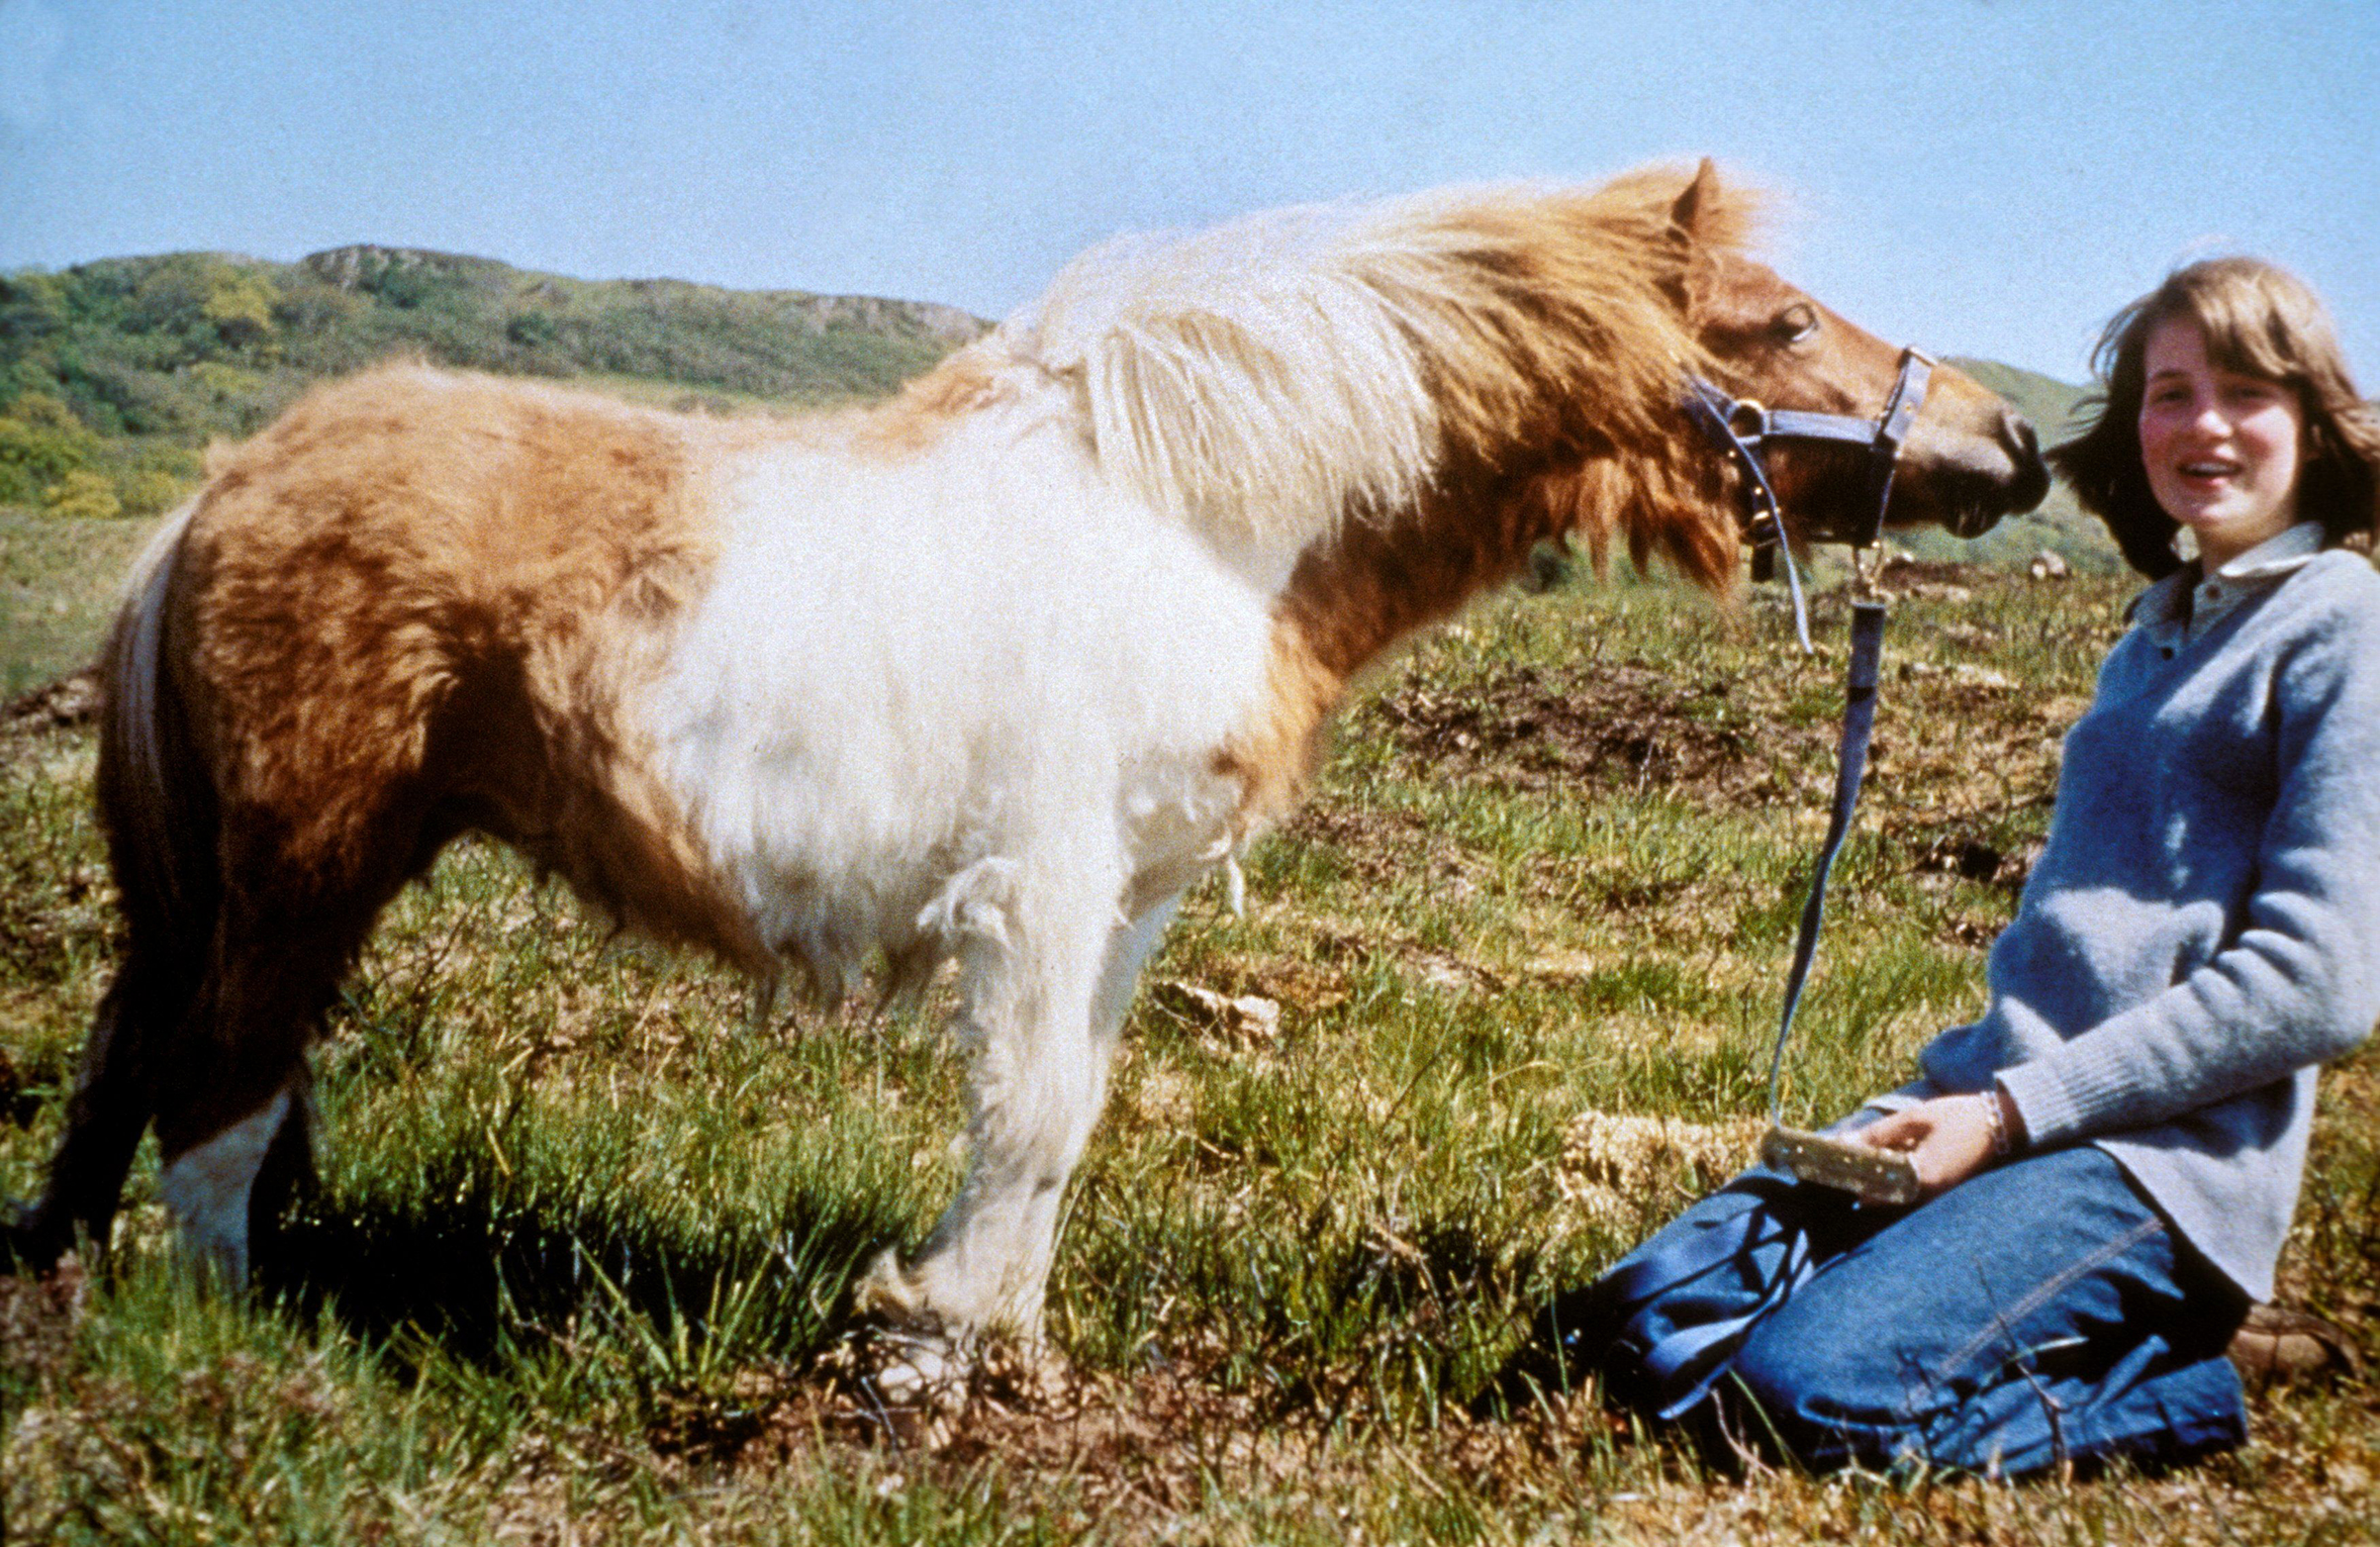 Lady Diana, playing with a pony in the countryside in England in the mid-1970s.